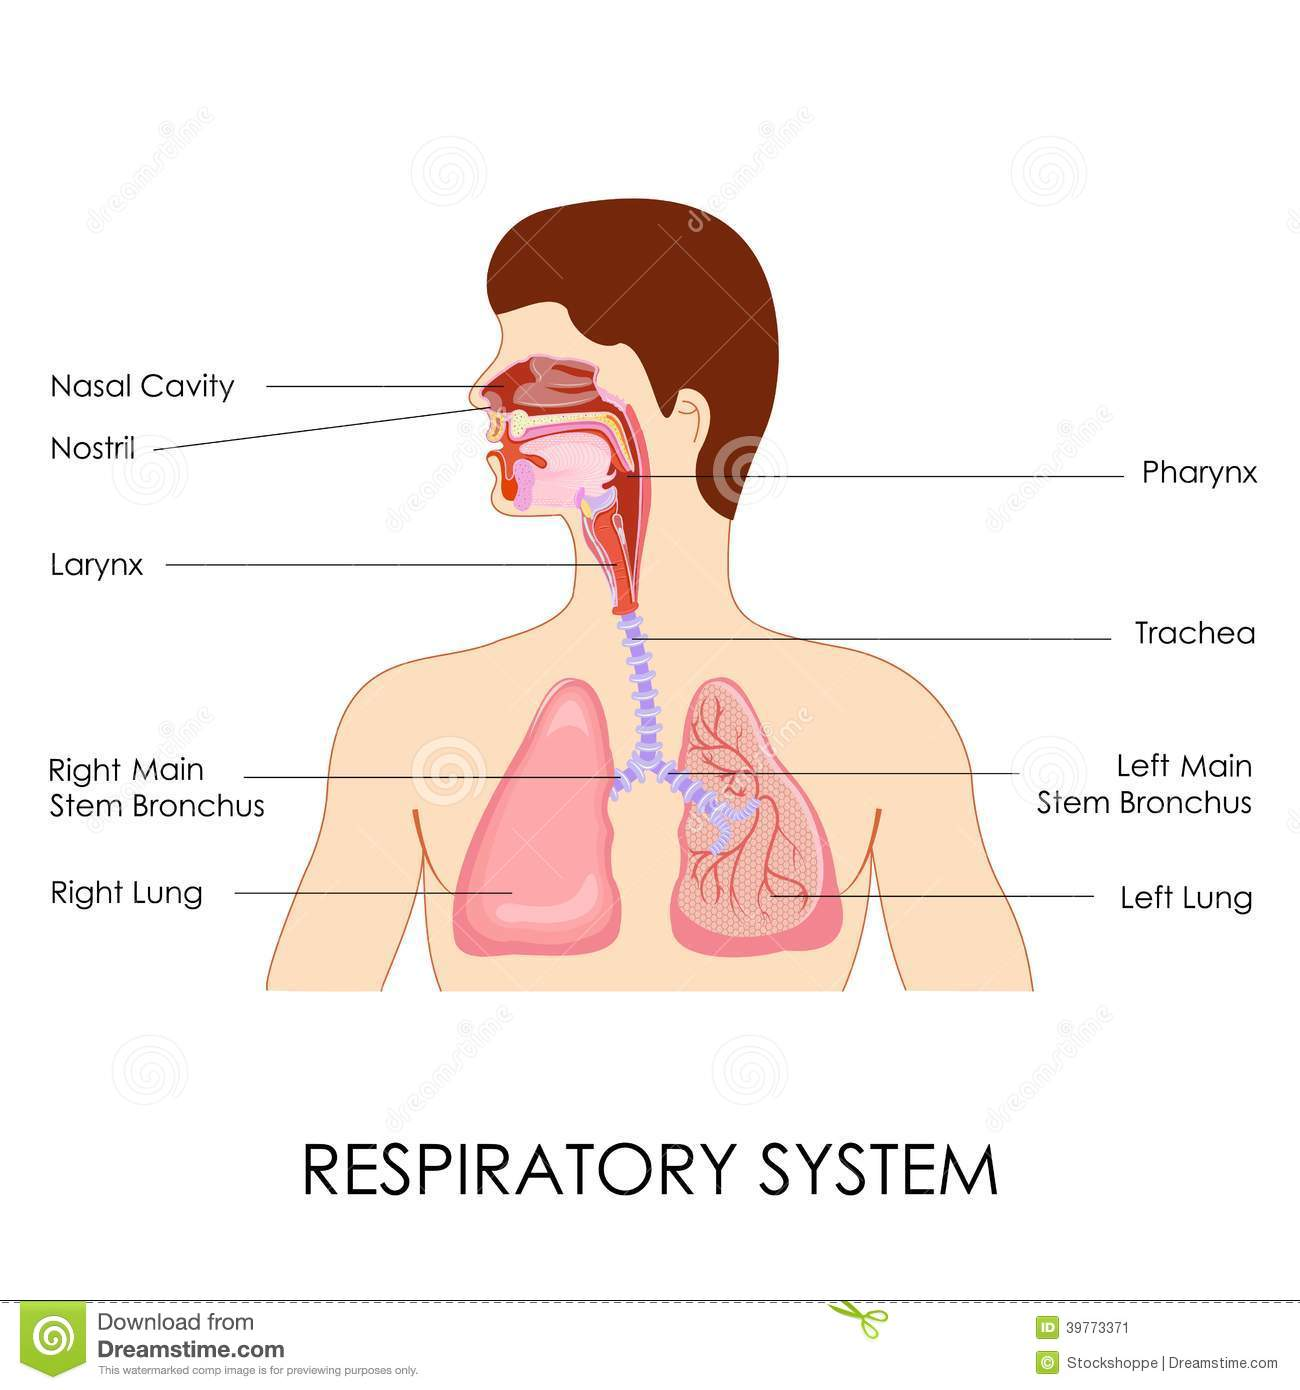 Respiratory system stock vector illustration of breathe 39773371 ccuart Choice Image